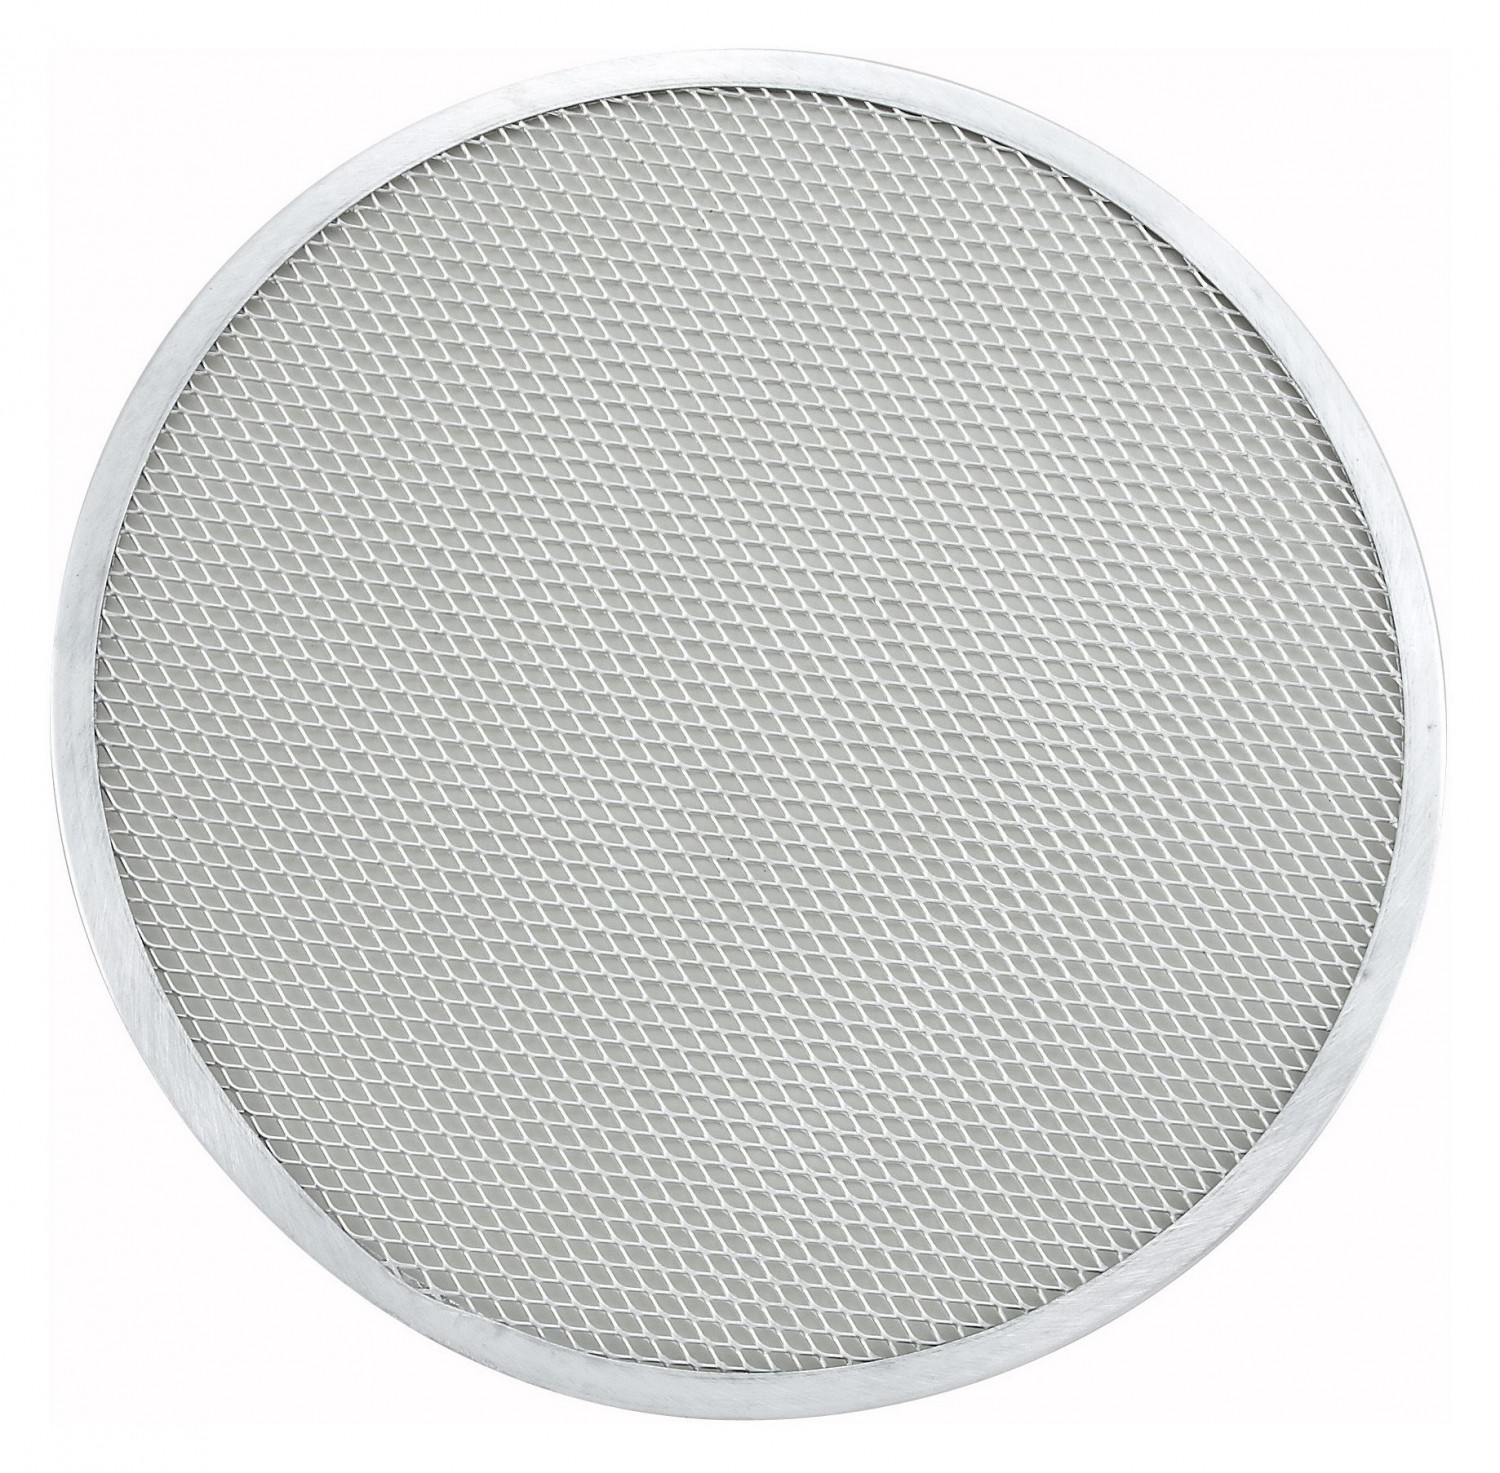 Winco APZS-14 Seamless Aluminum Pizza Screen 14""